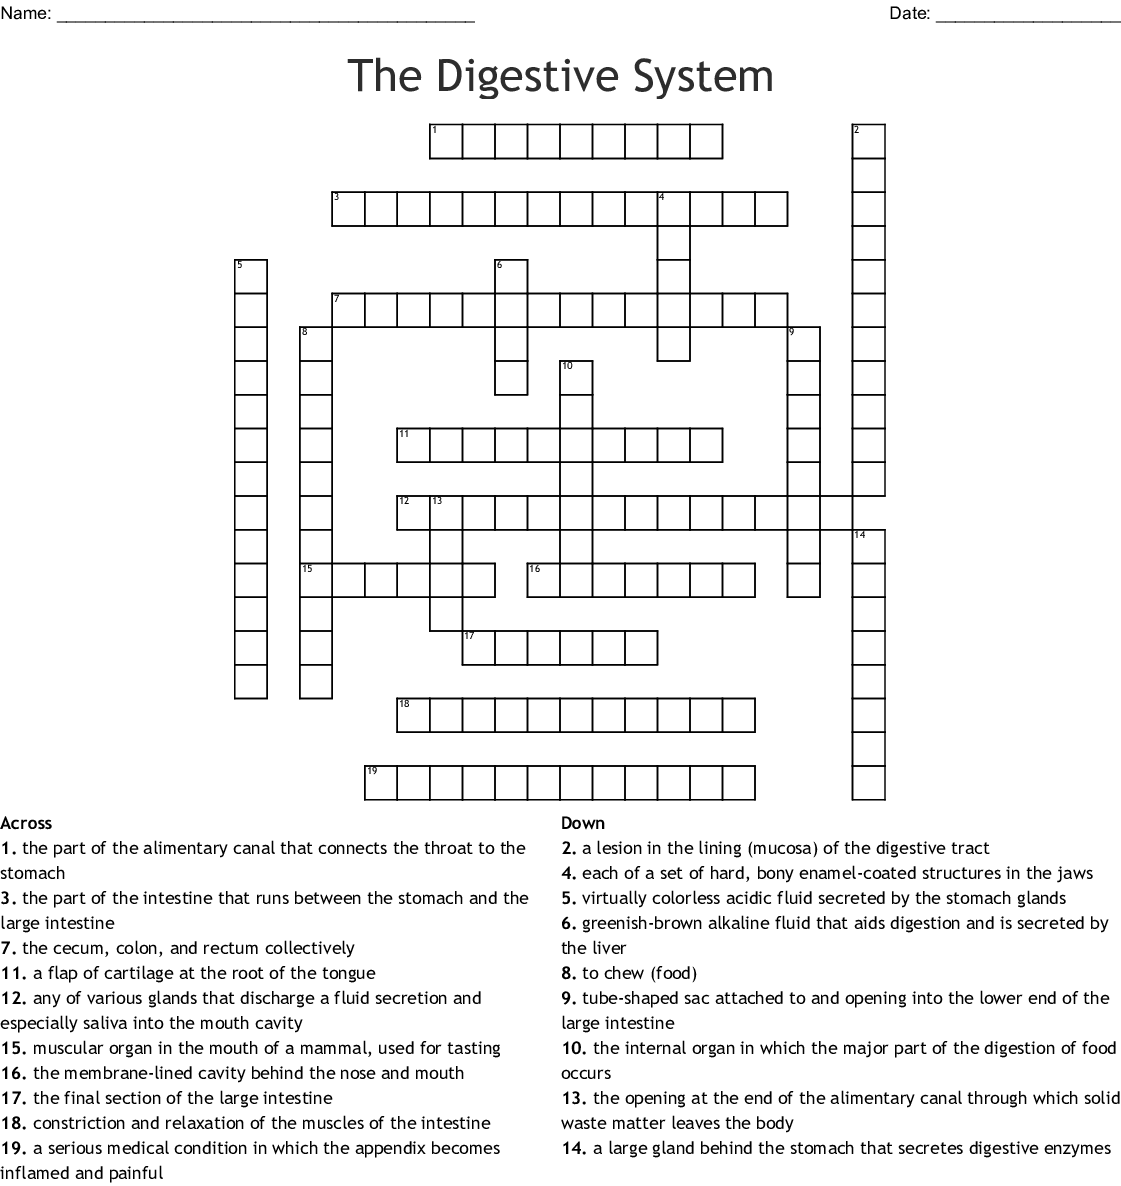 The Digestive System Crossword